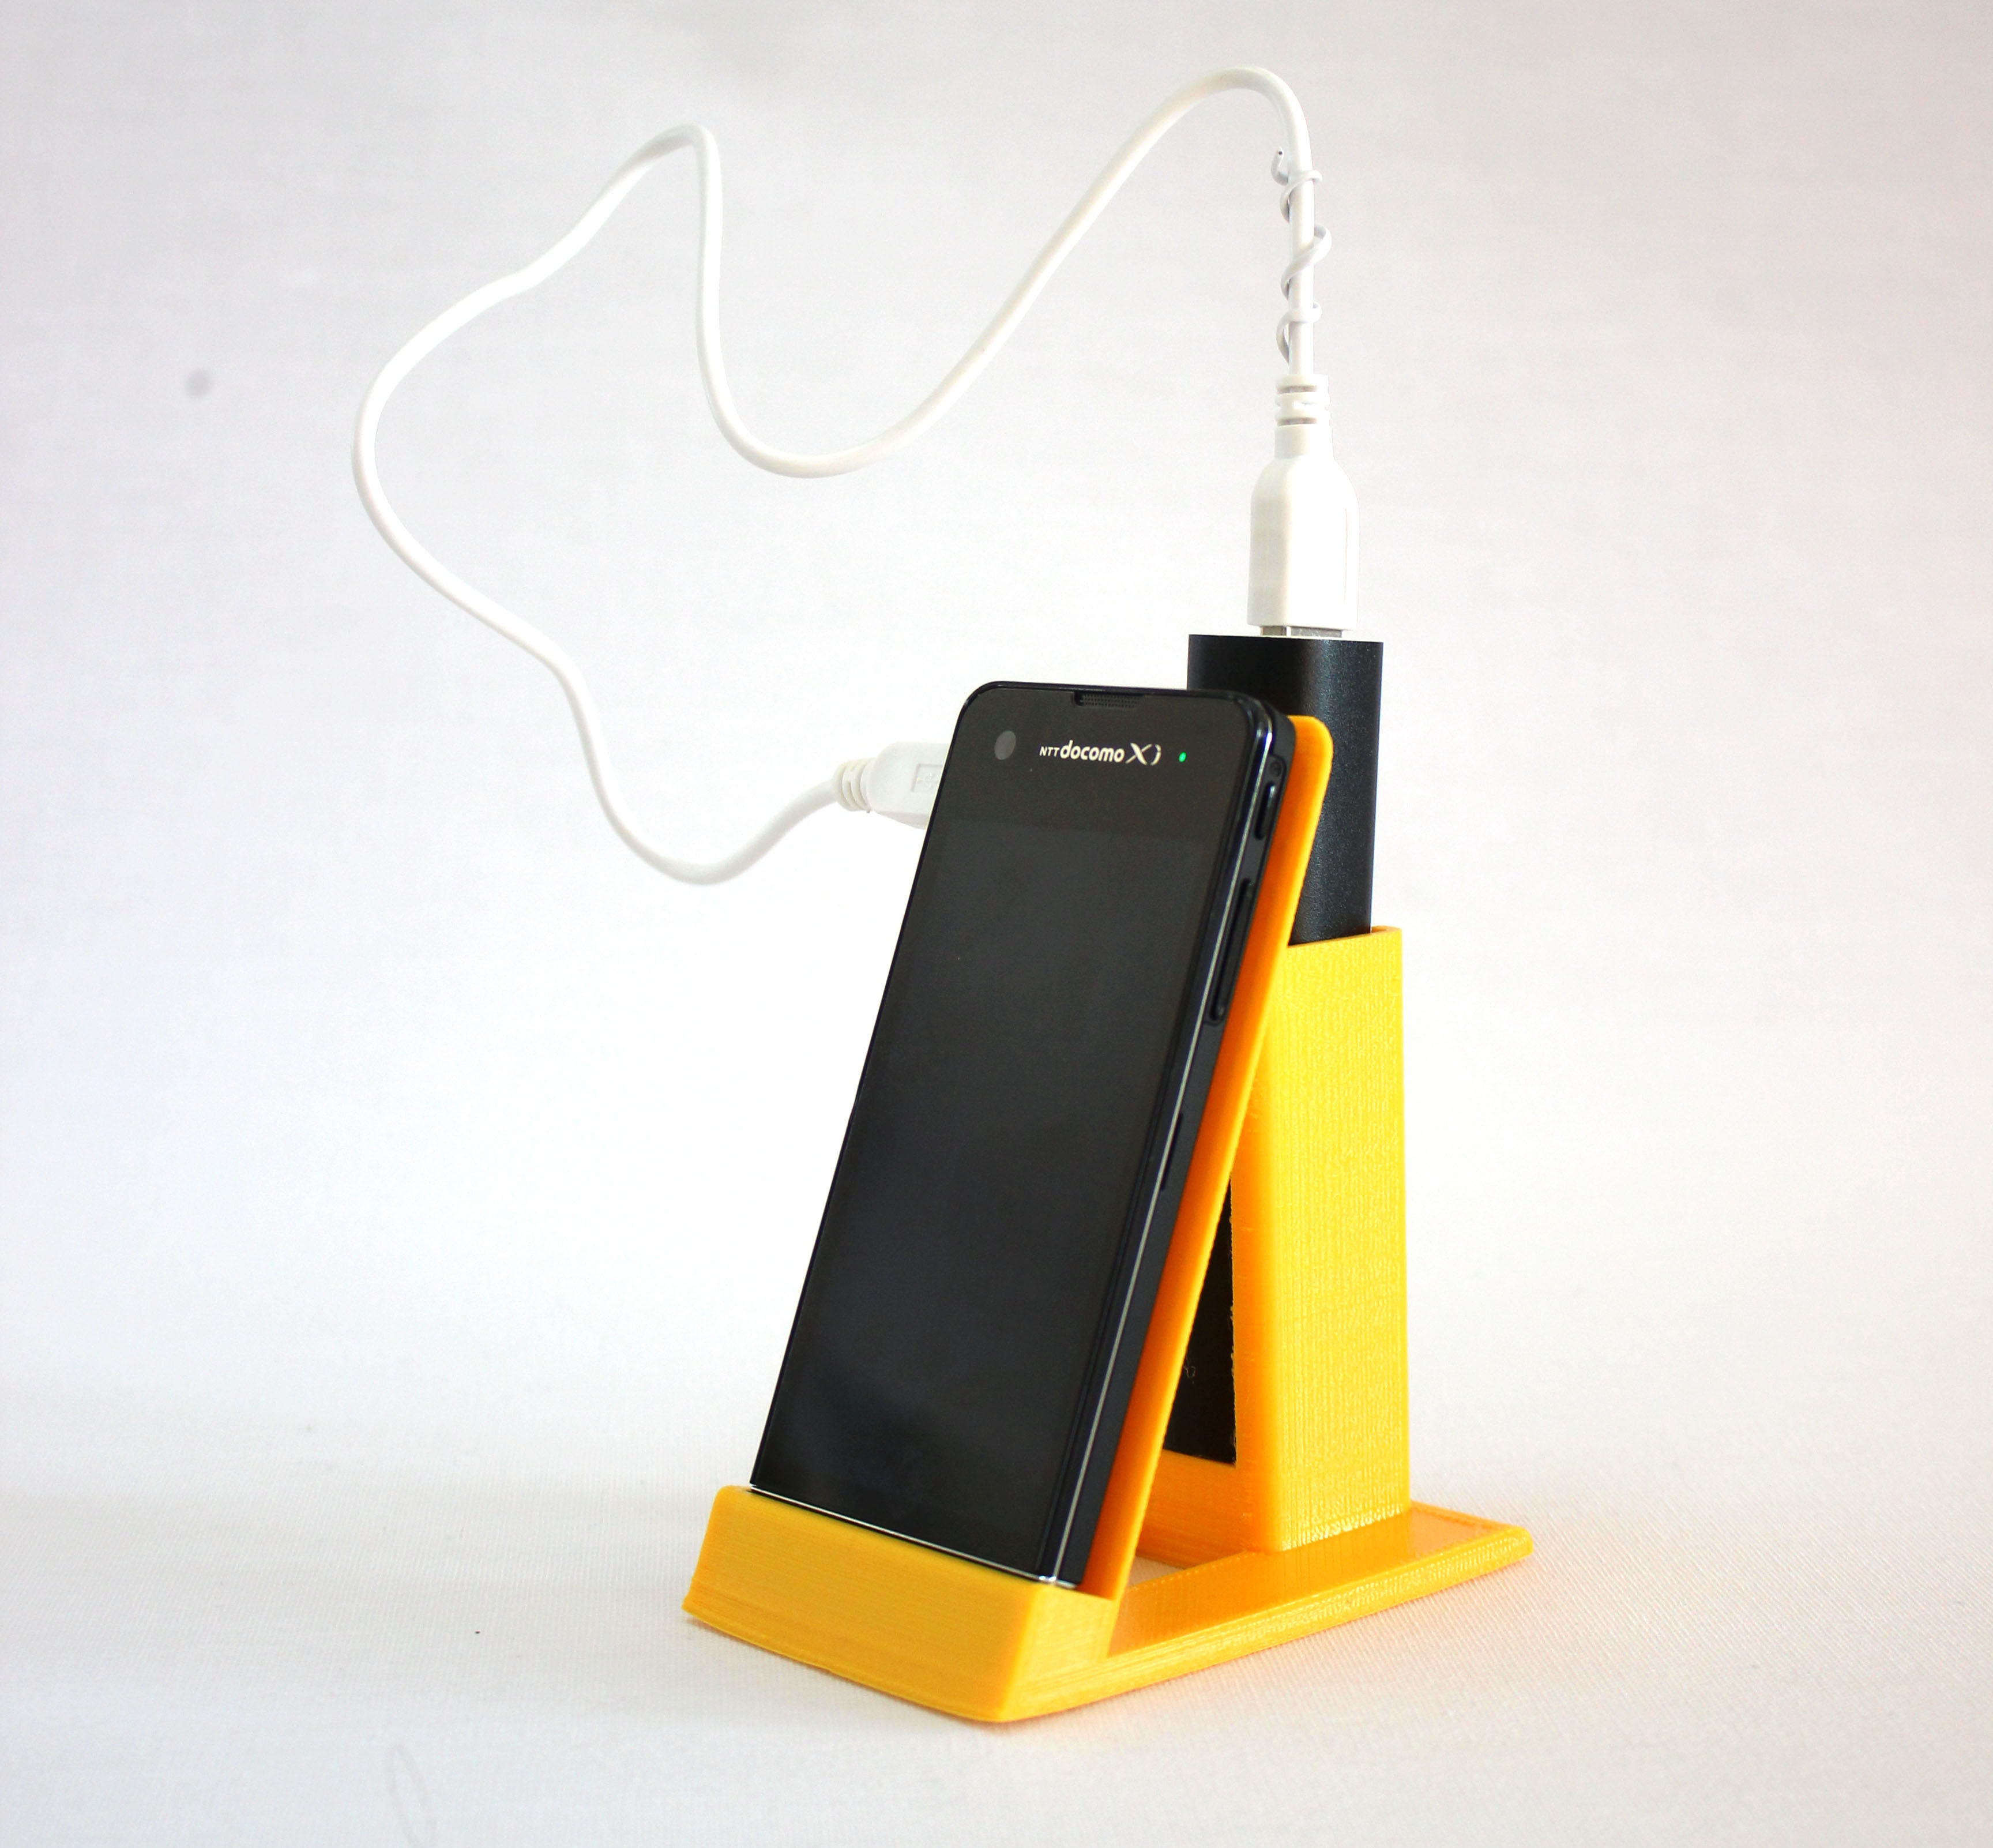 Sony Xperia Sx Phone And Powerbank Holder Free 3d Model 3d